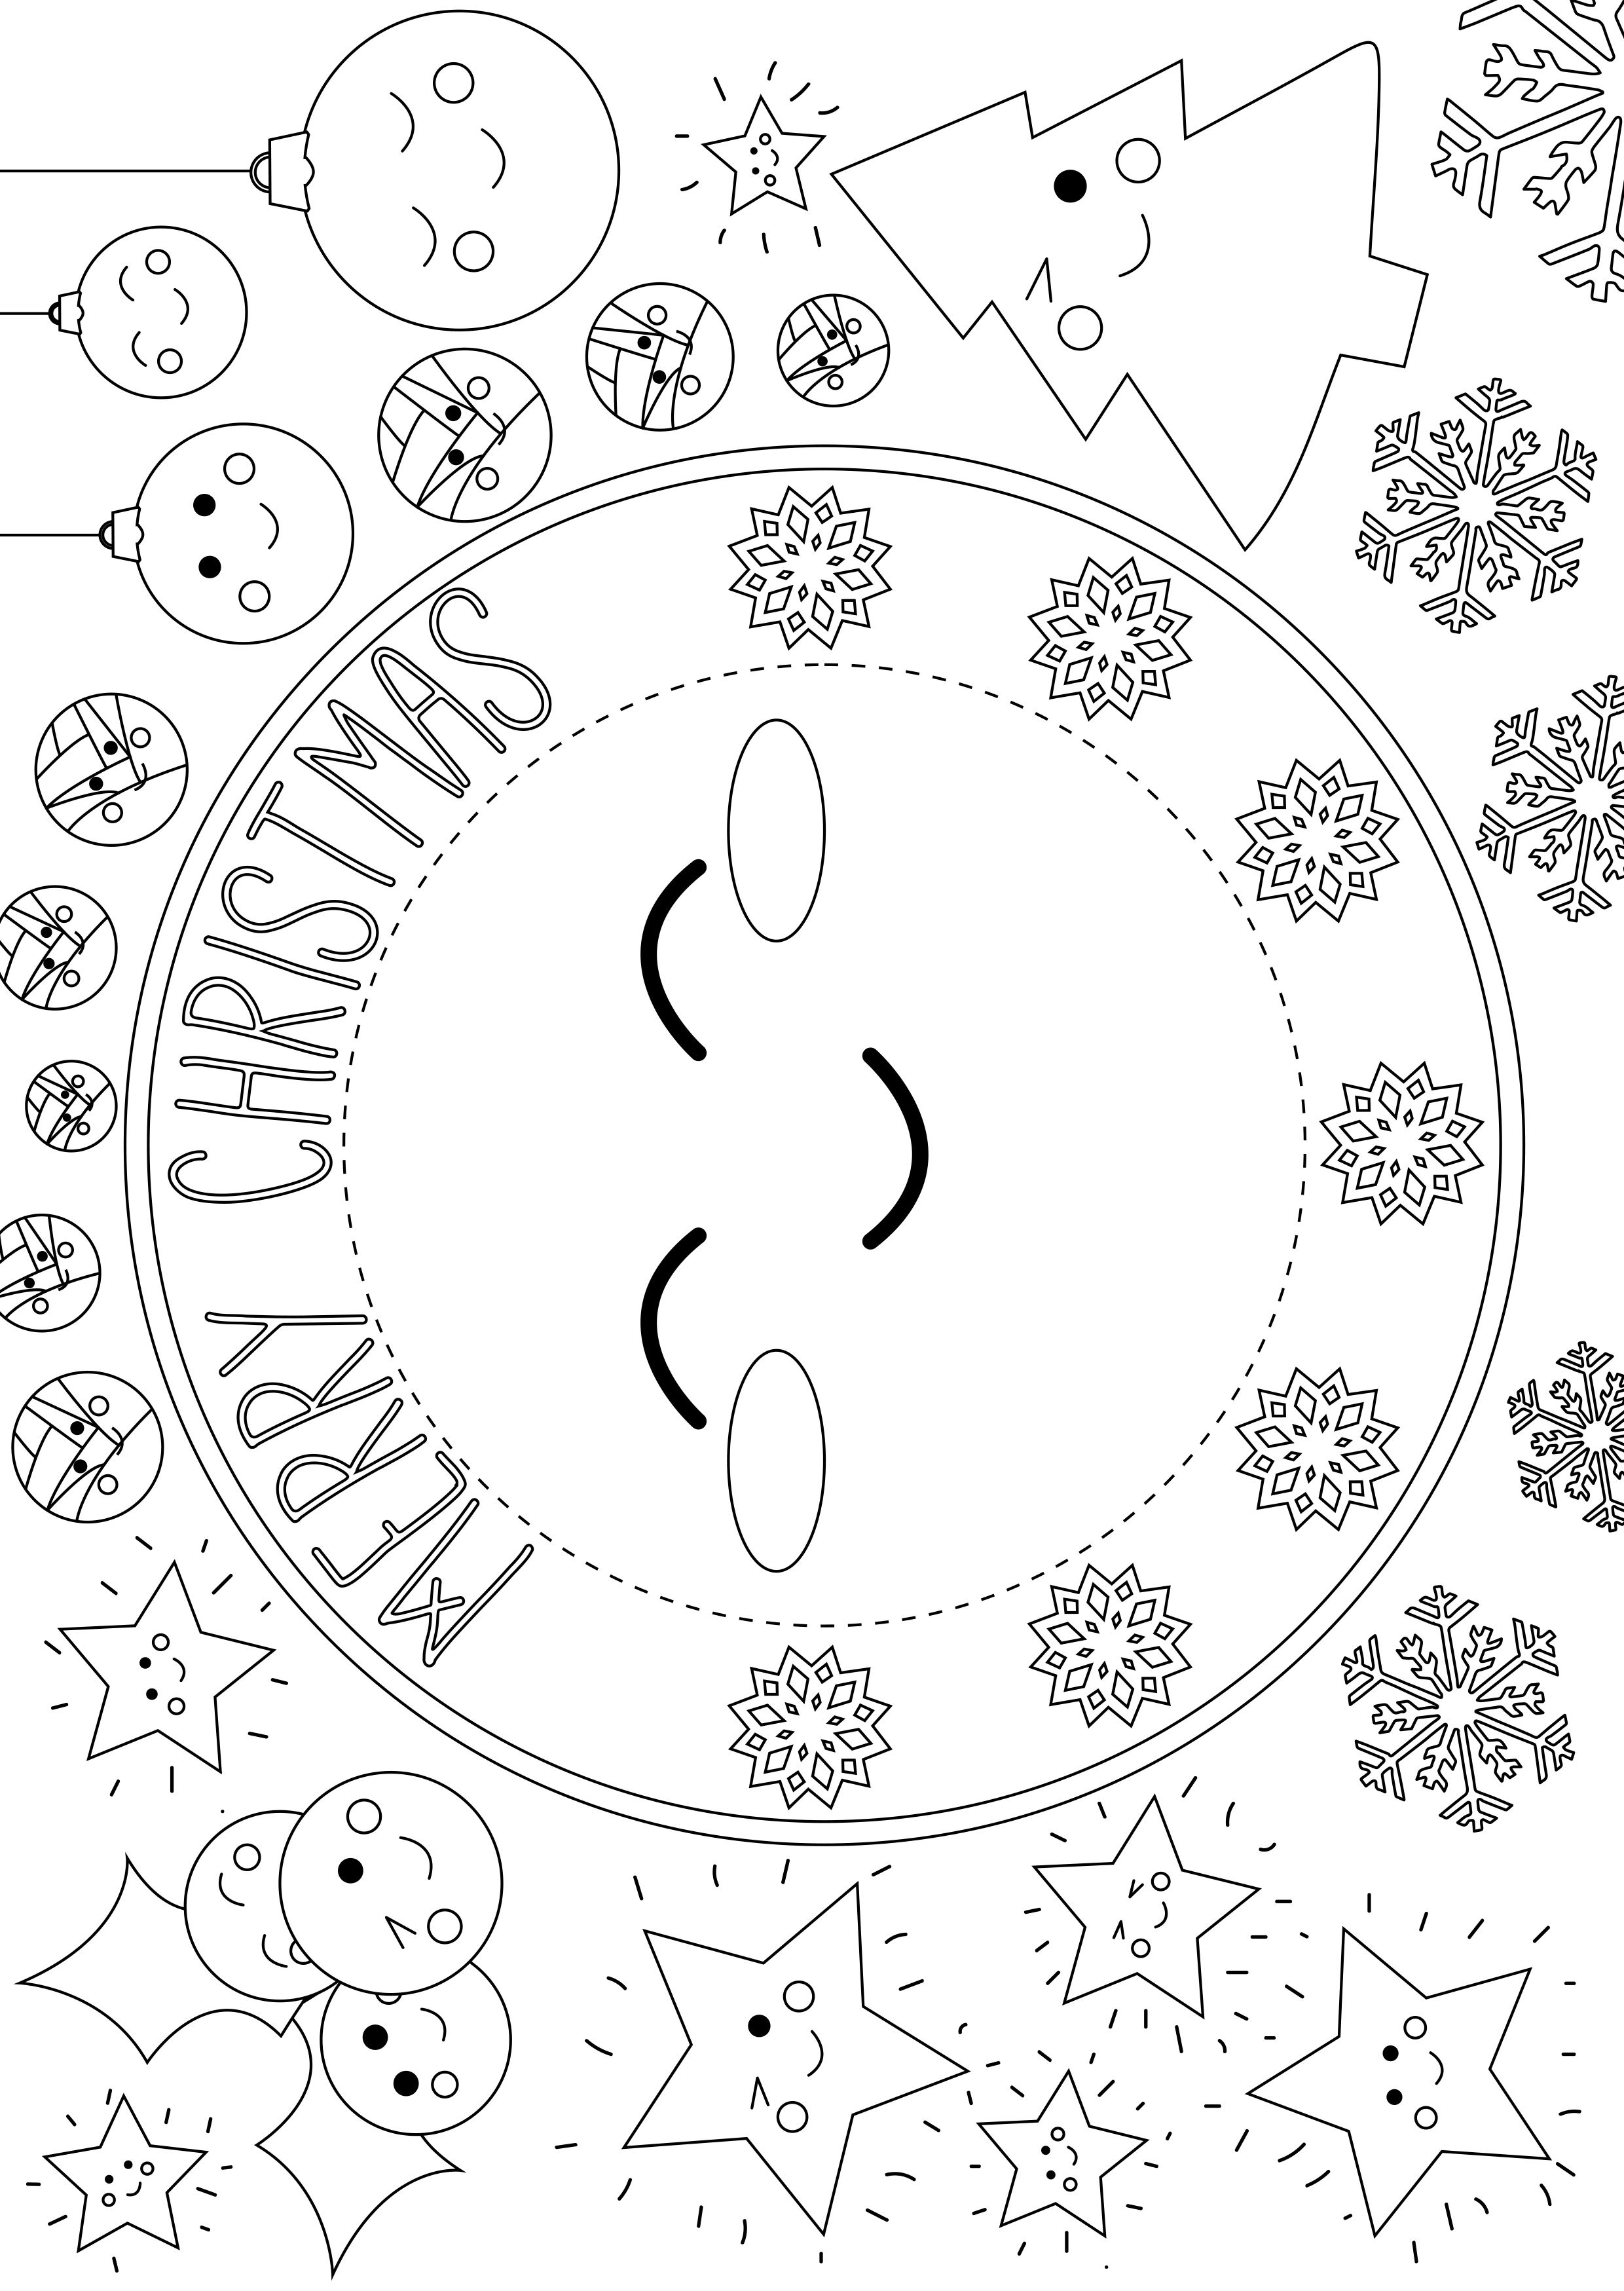 Trimcraft Advent Calendar Day 22- Free Printable Kids Placemat - Free Printable Christmas Placemats For Adults